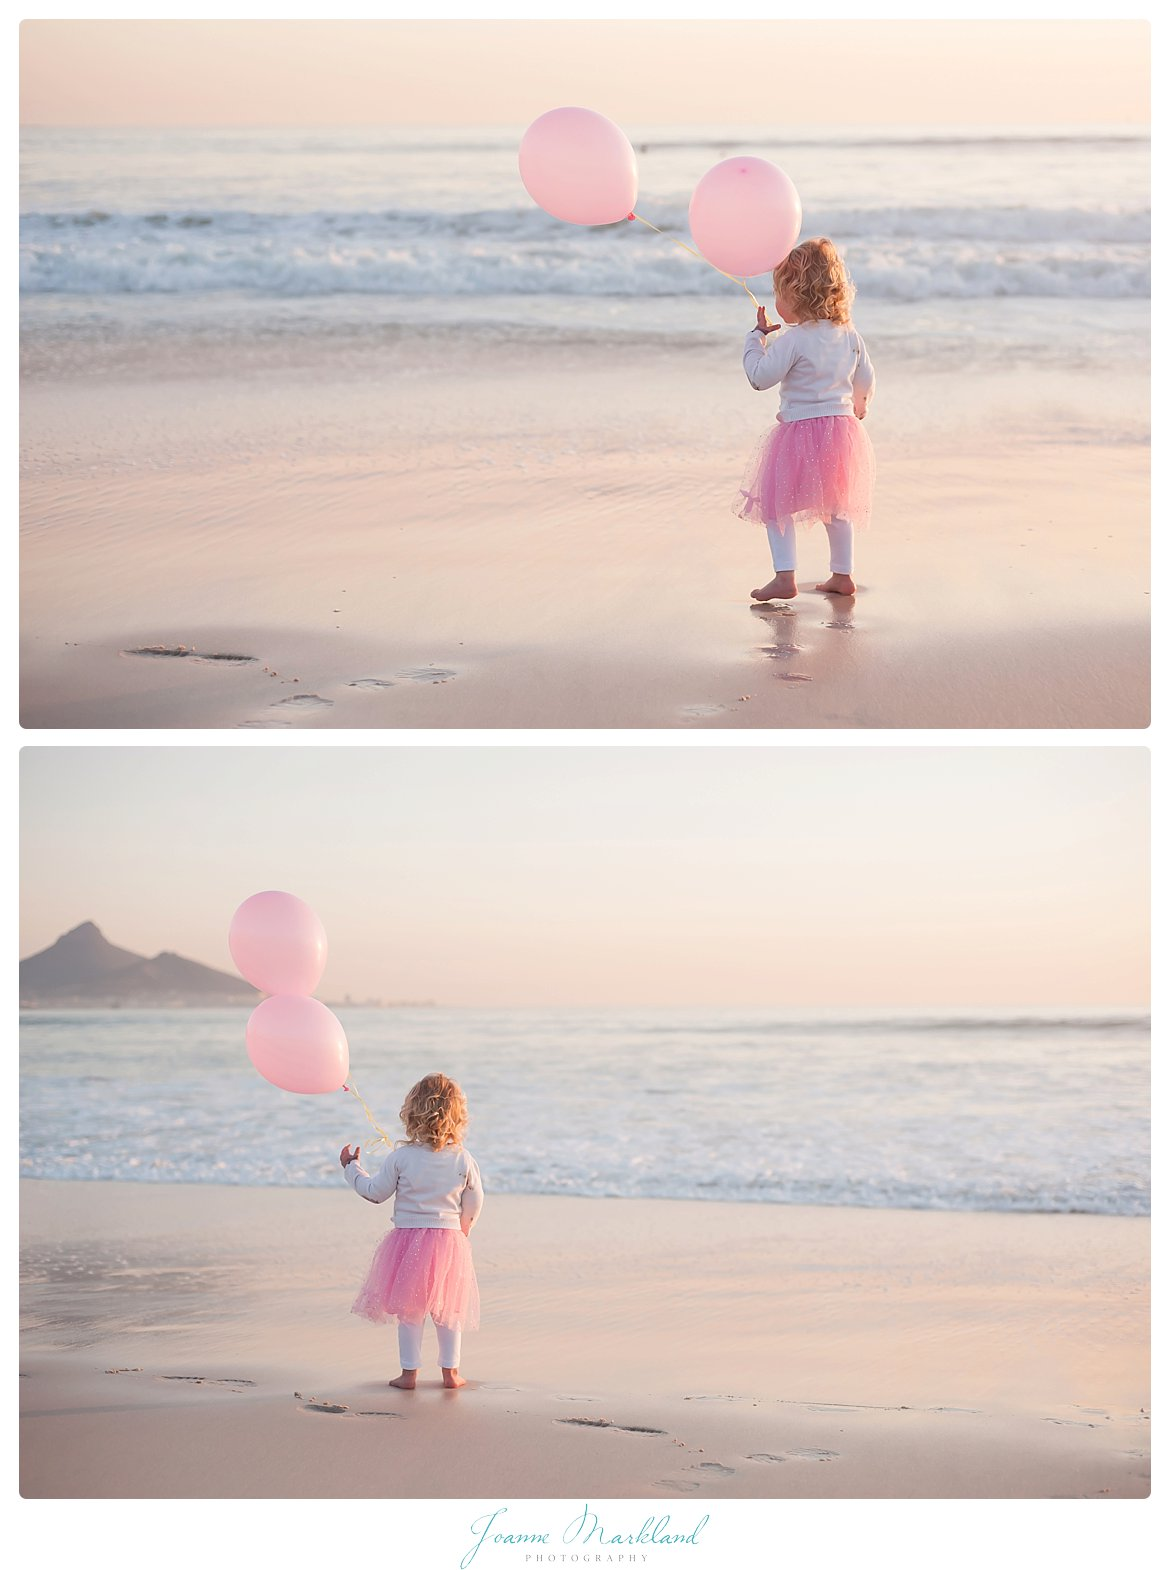 toddler-birthday-portraits-family-photographer-joanne-markland-photography-cape-town-013